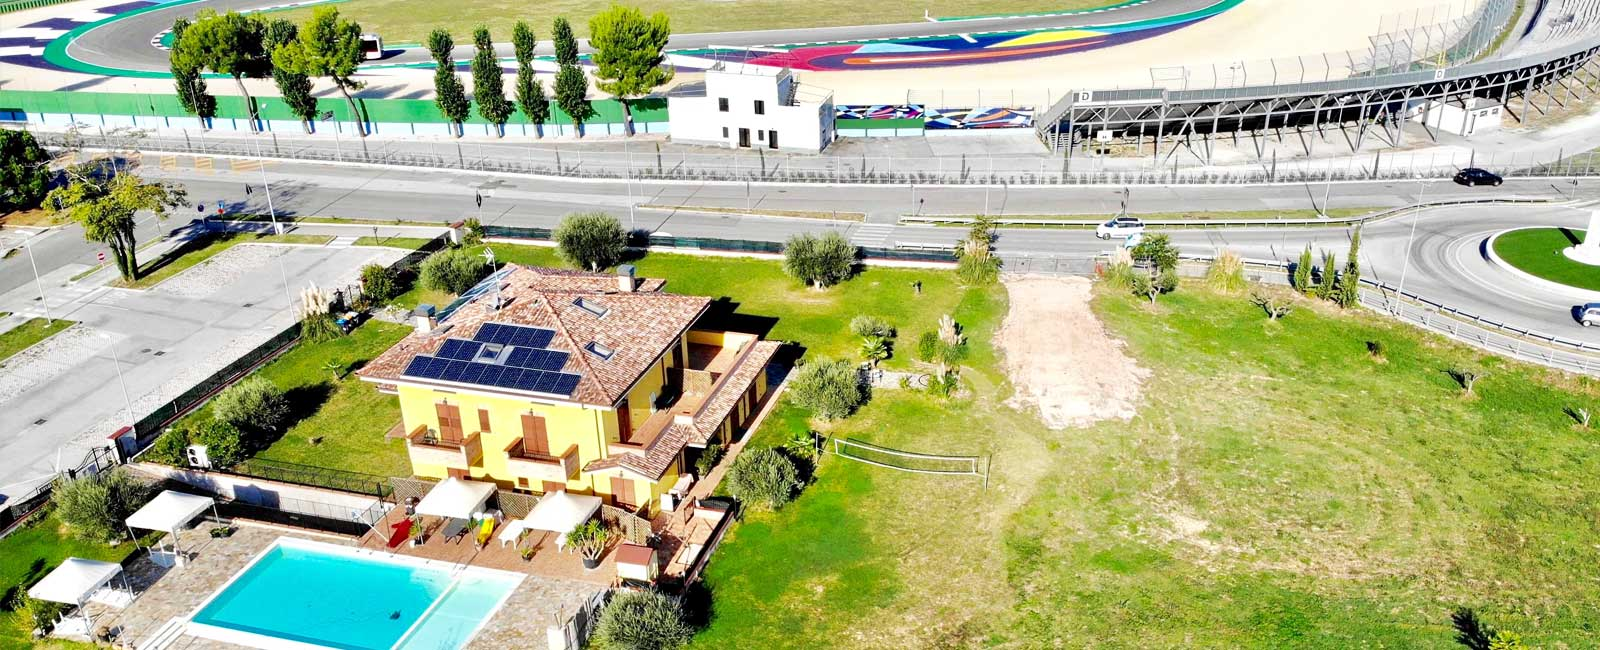 Where you can find us in Misano